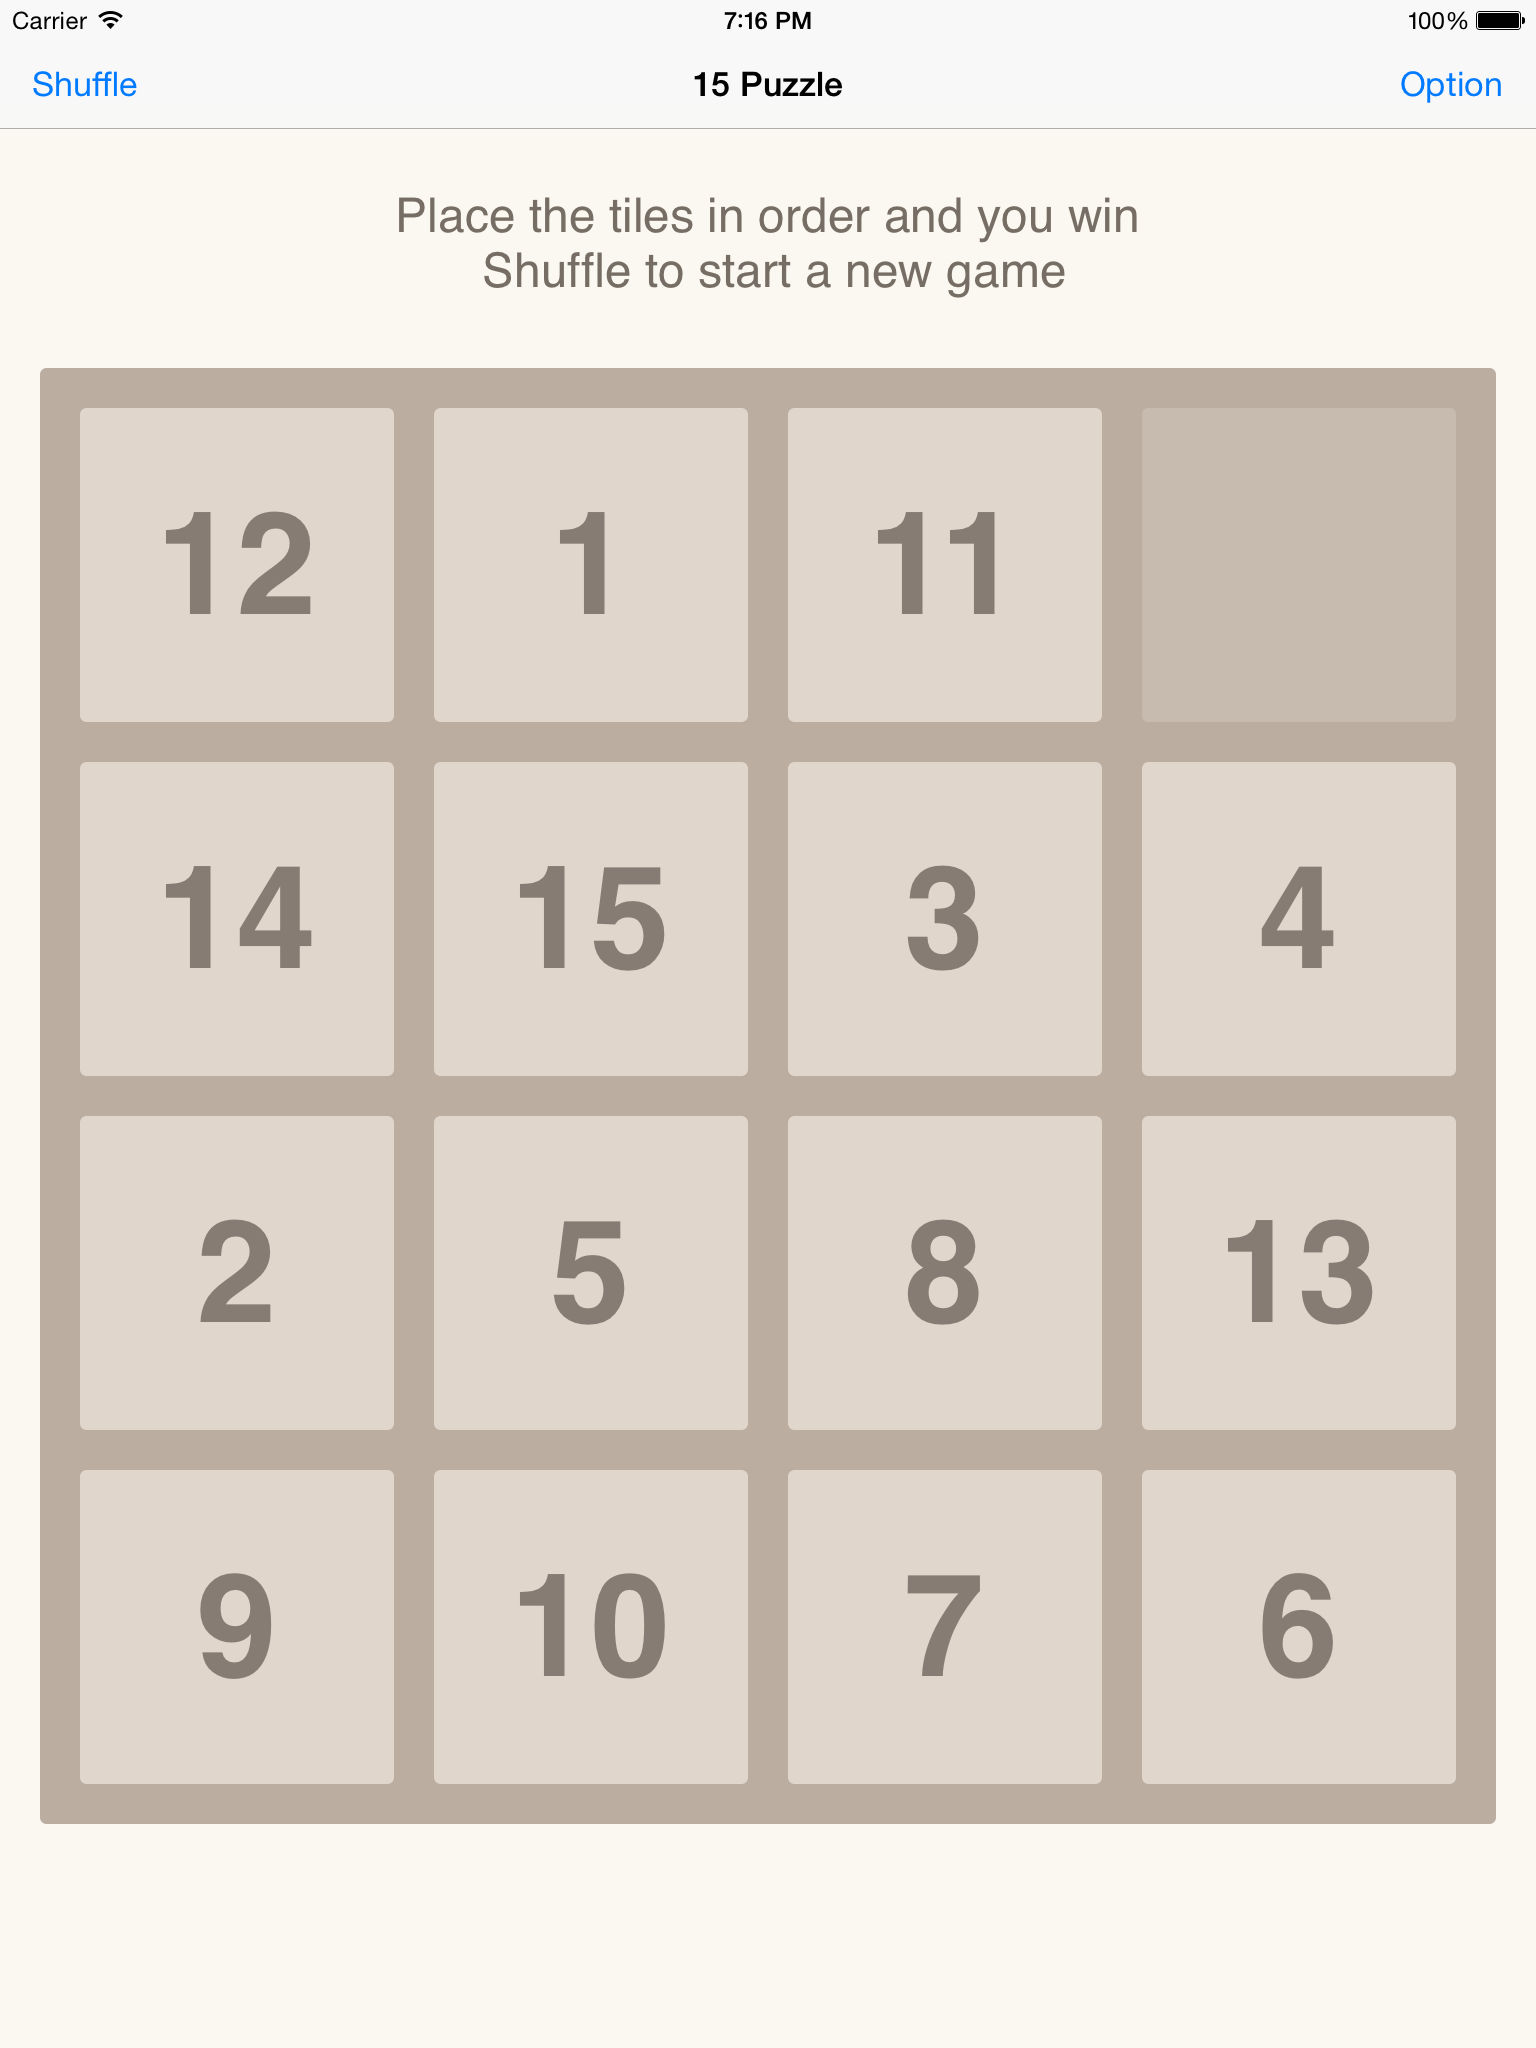 15 Puzzle Challenge HD - Traditional Number Tile Puzzles